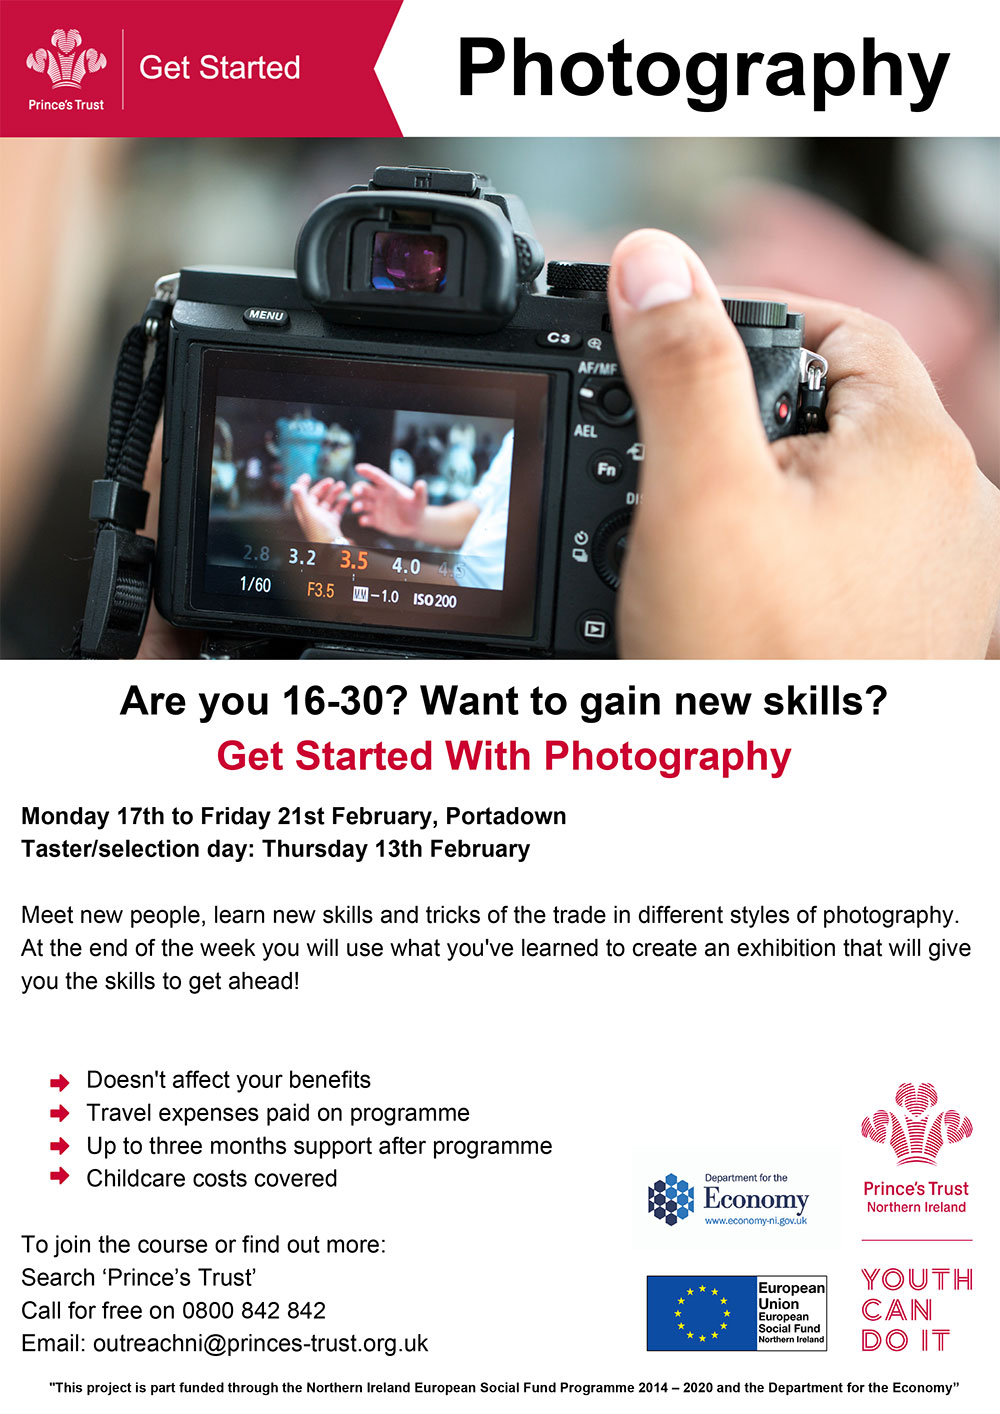 Get Started with Photography Portadown 2